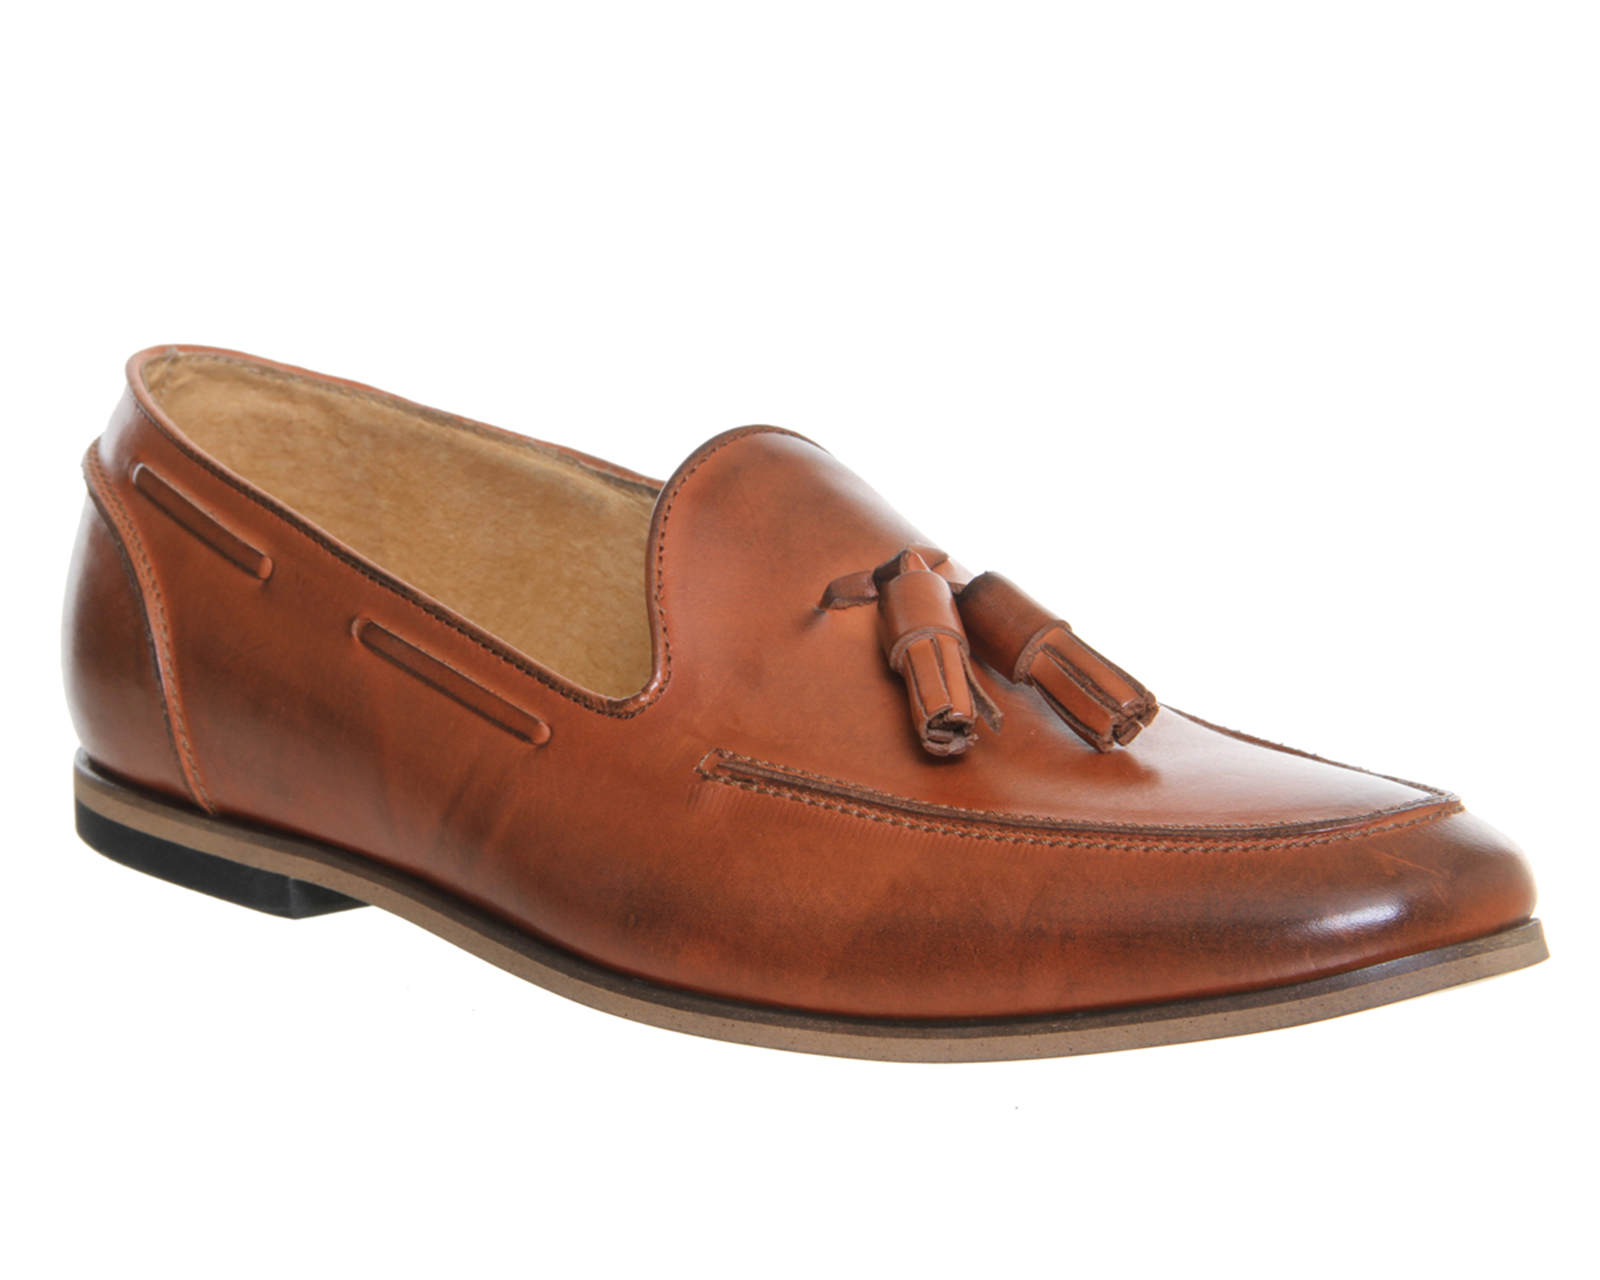 mens ask the missus avocado tassel loafers cognac leather